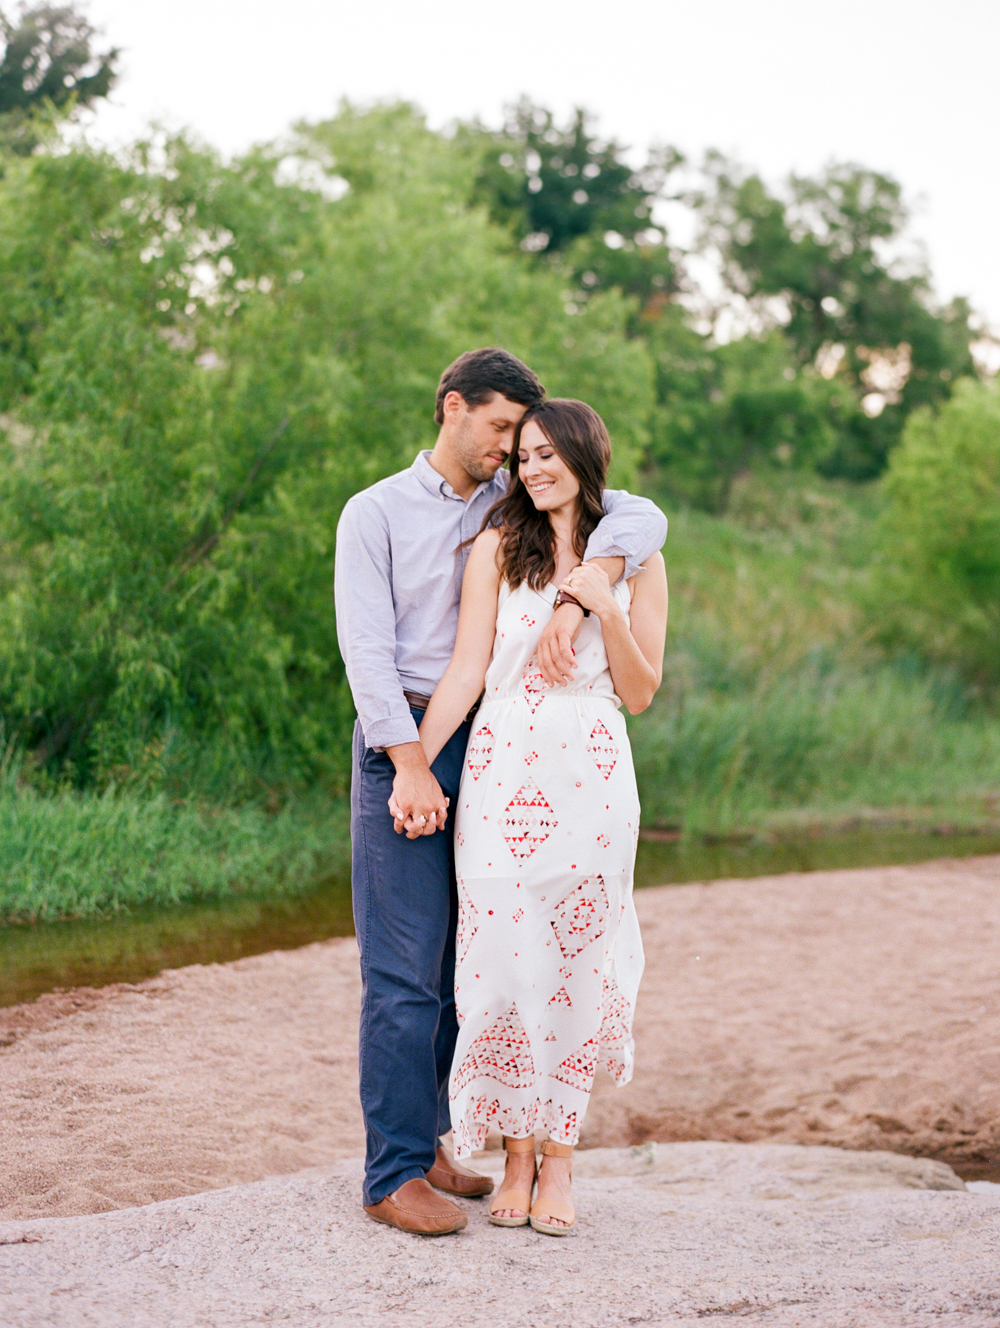 dana fernandez photography enchanted rock engagements photographer austin wedding destination film-18.jpg